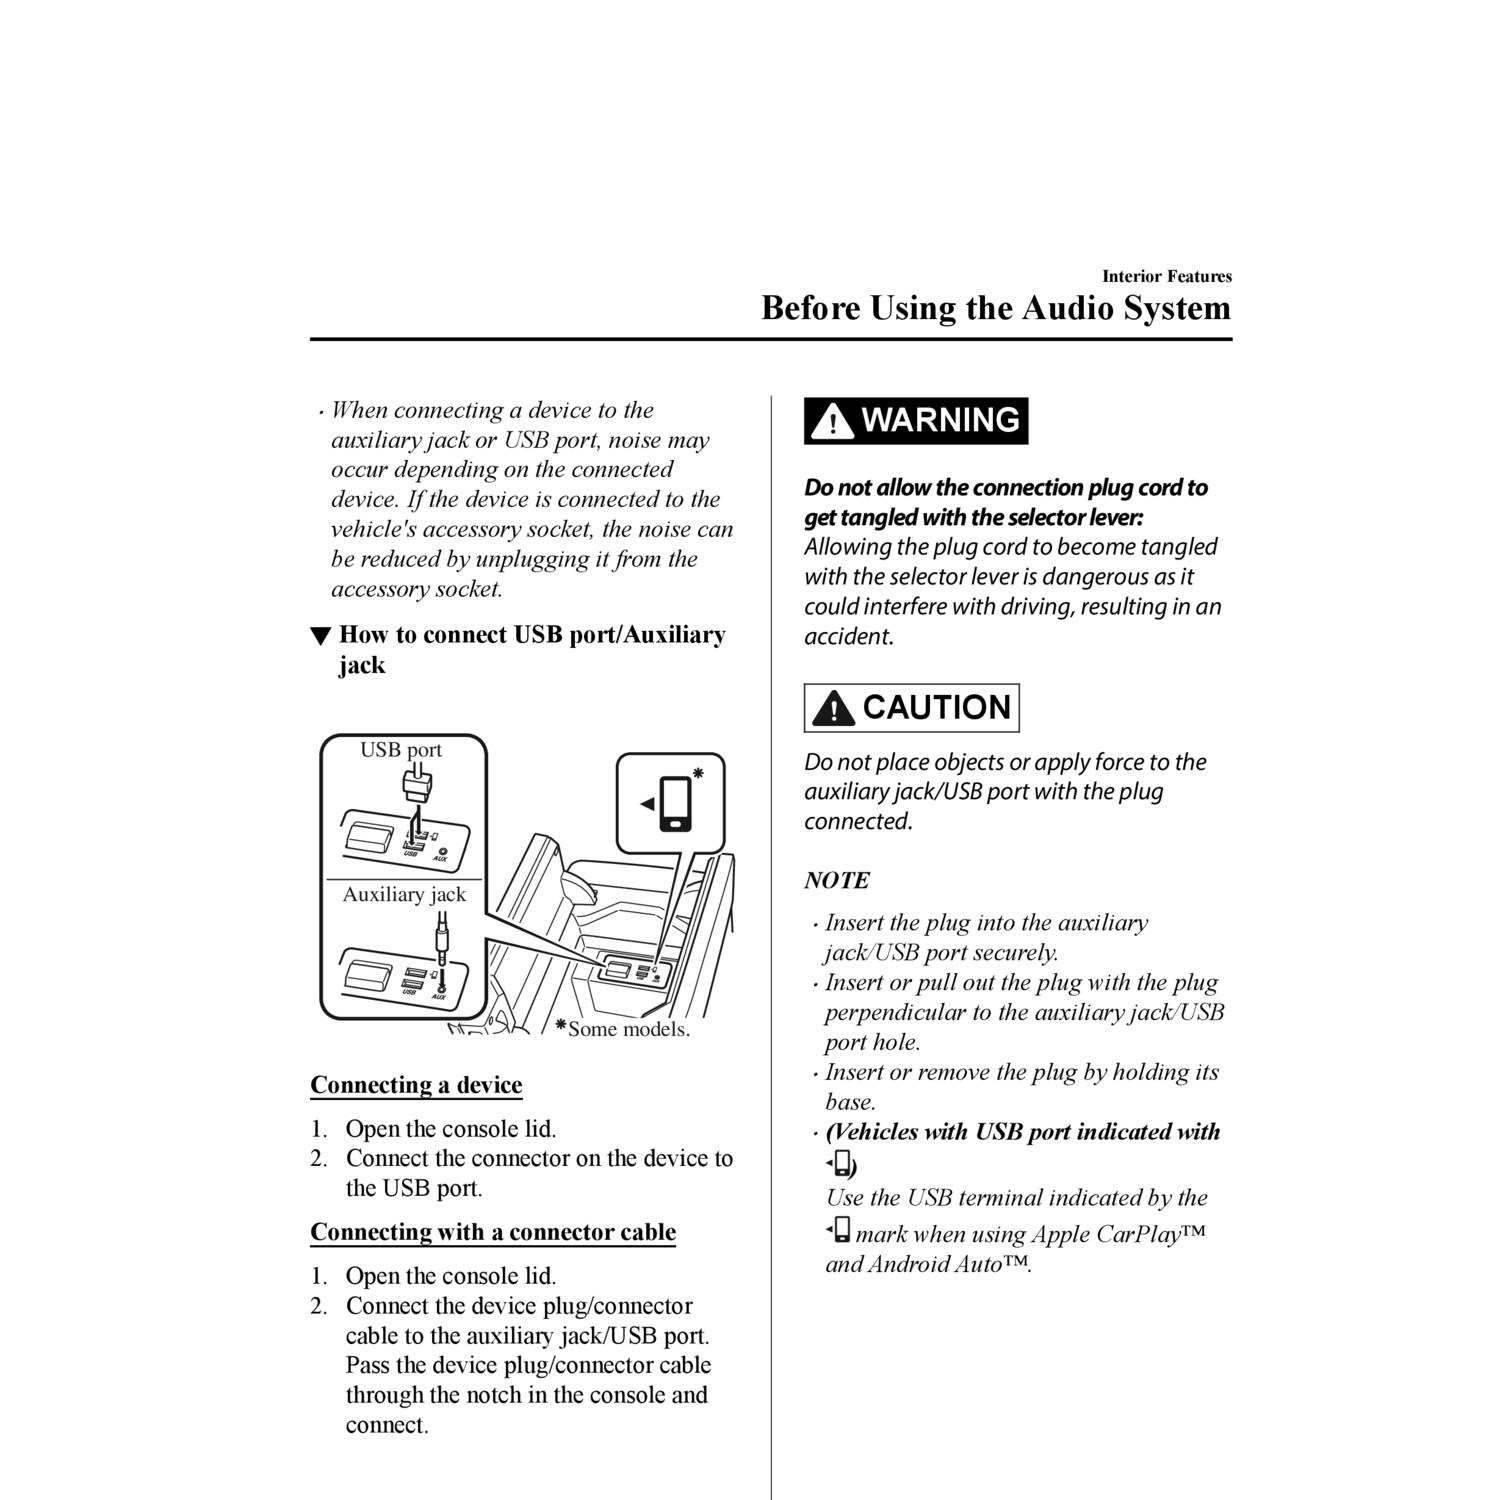 Mazda CP-AA Owners Manual Extract 2018.pdf | DocDroid